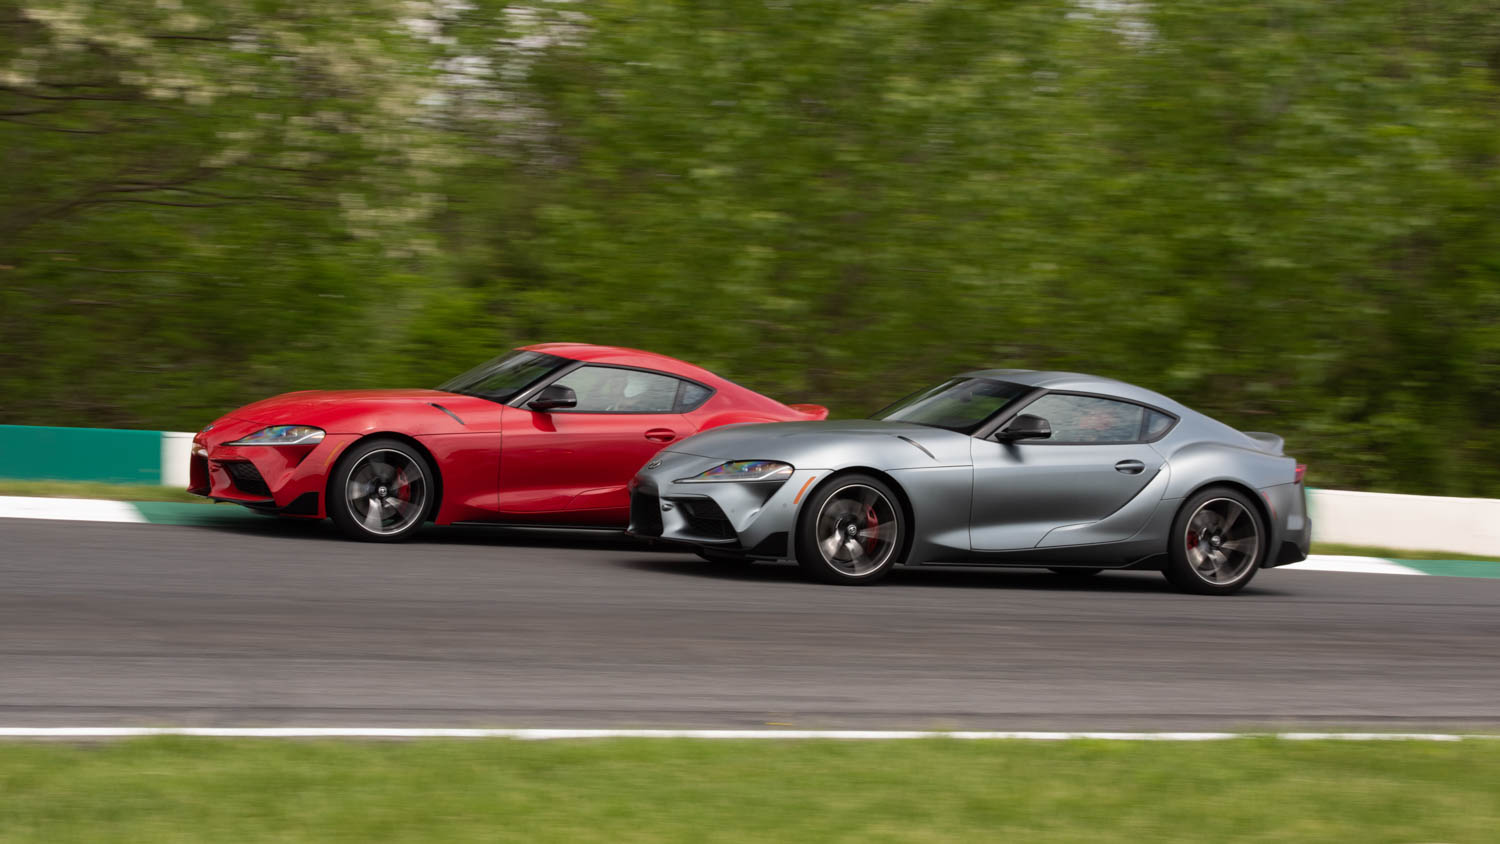 2020 Toyota Supra GR driving